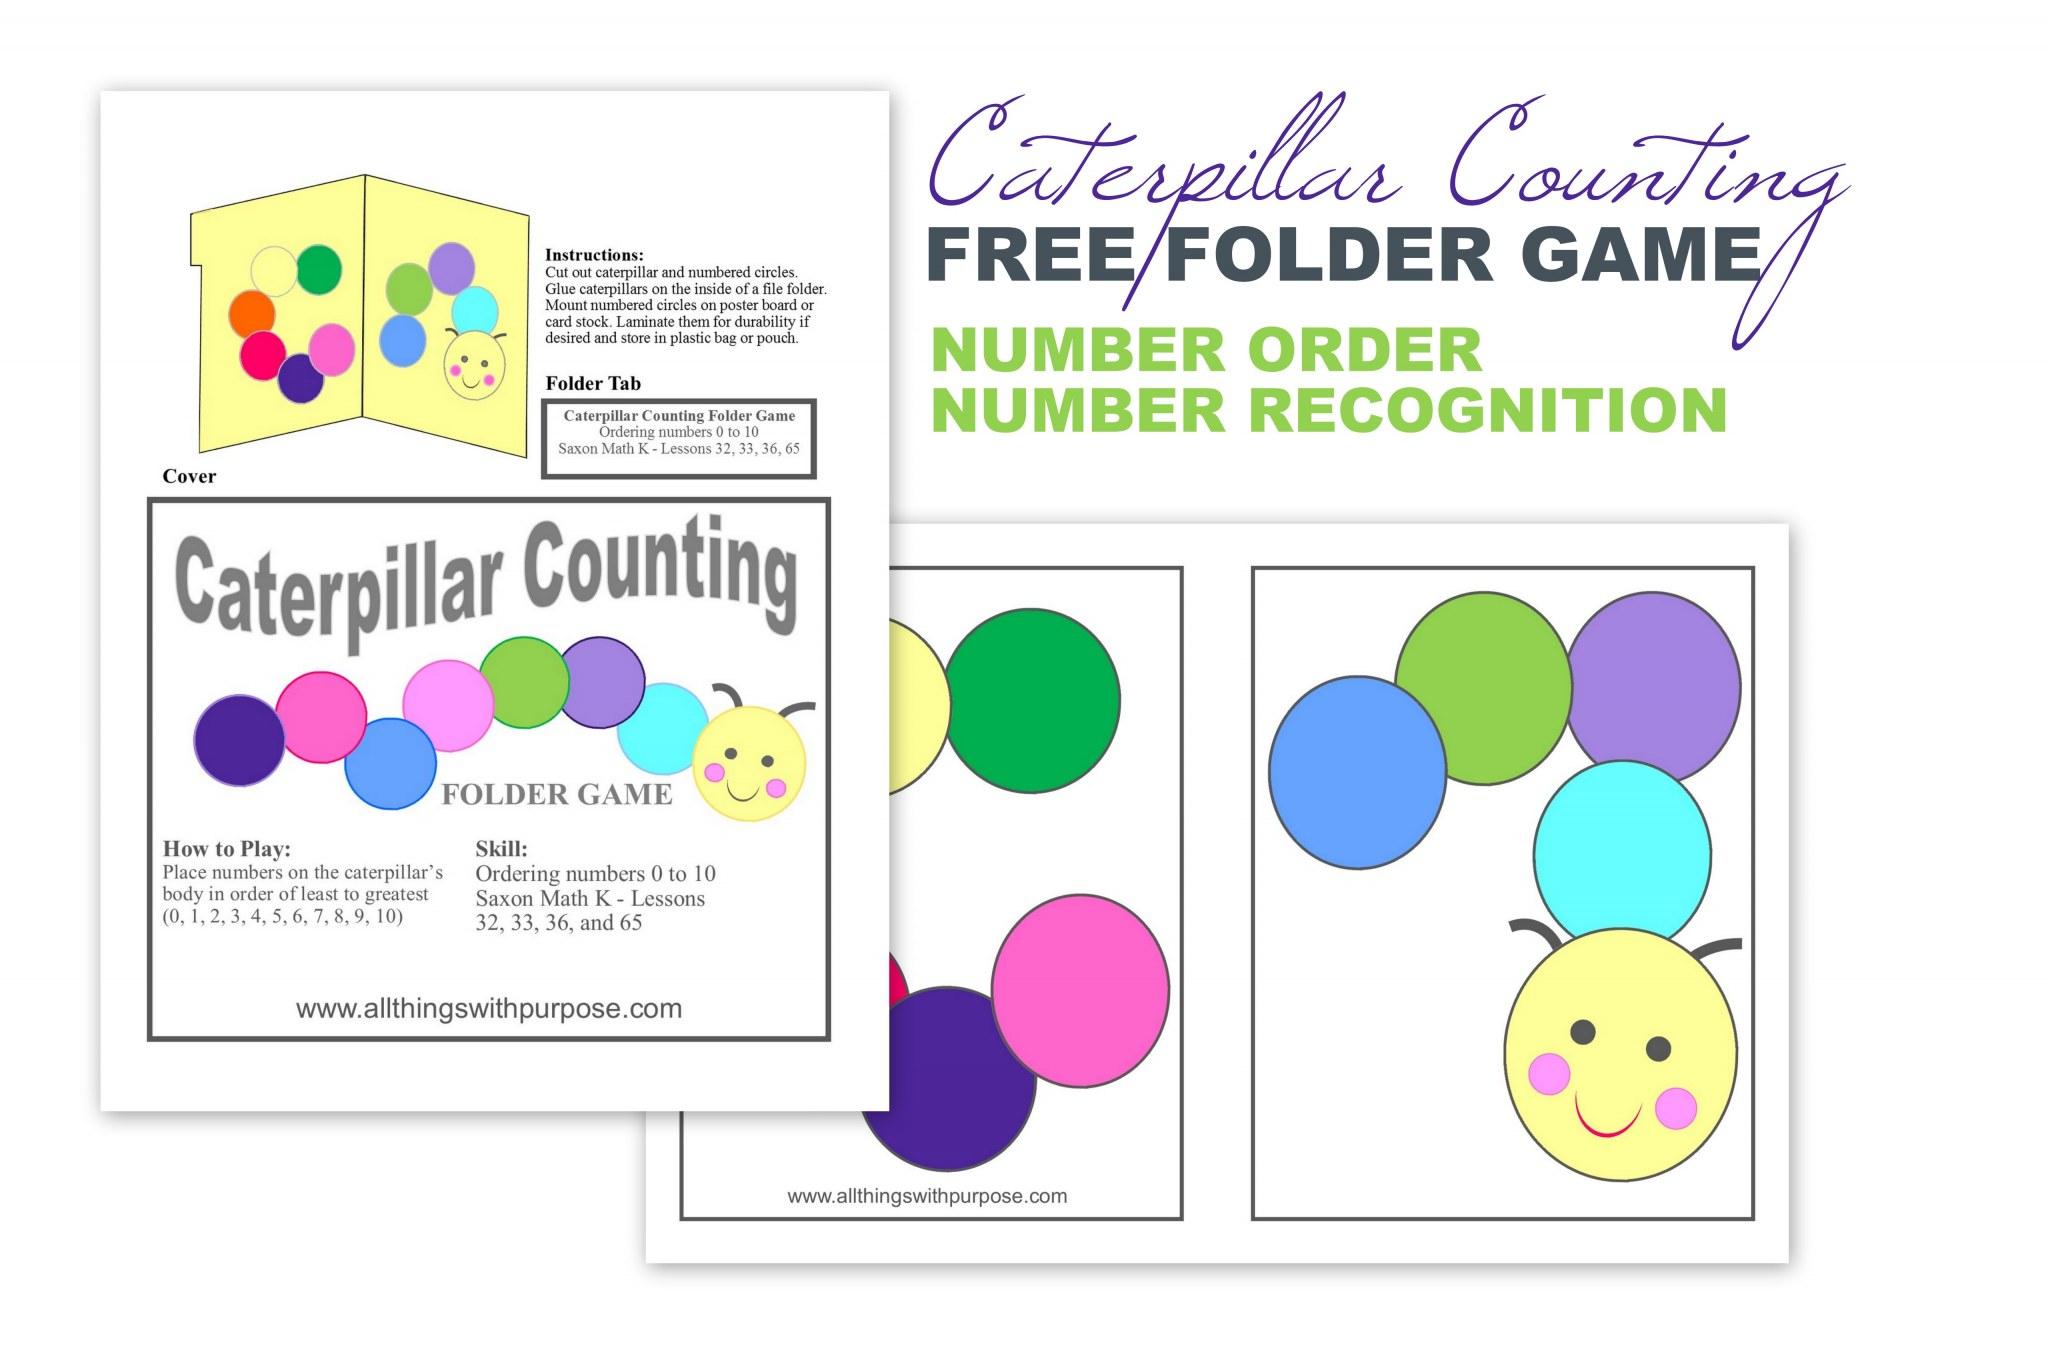 Caterpillar Counting Folder Game